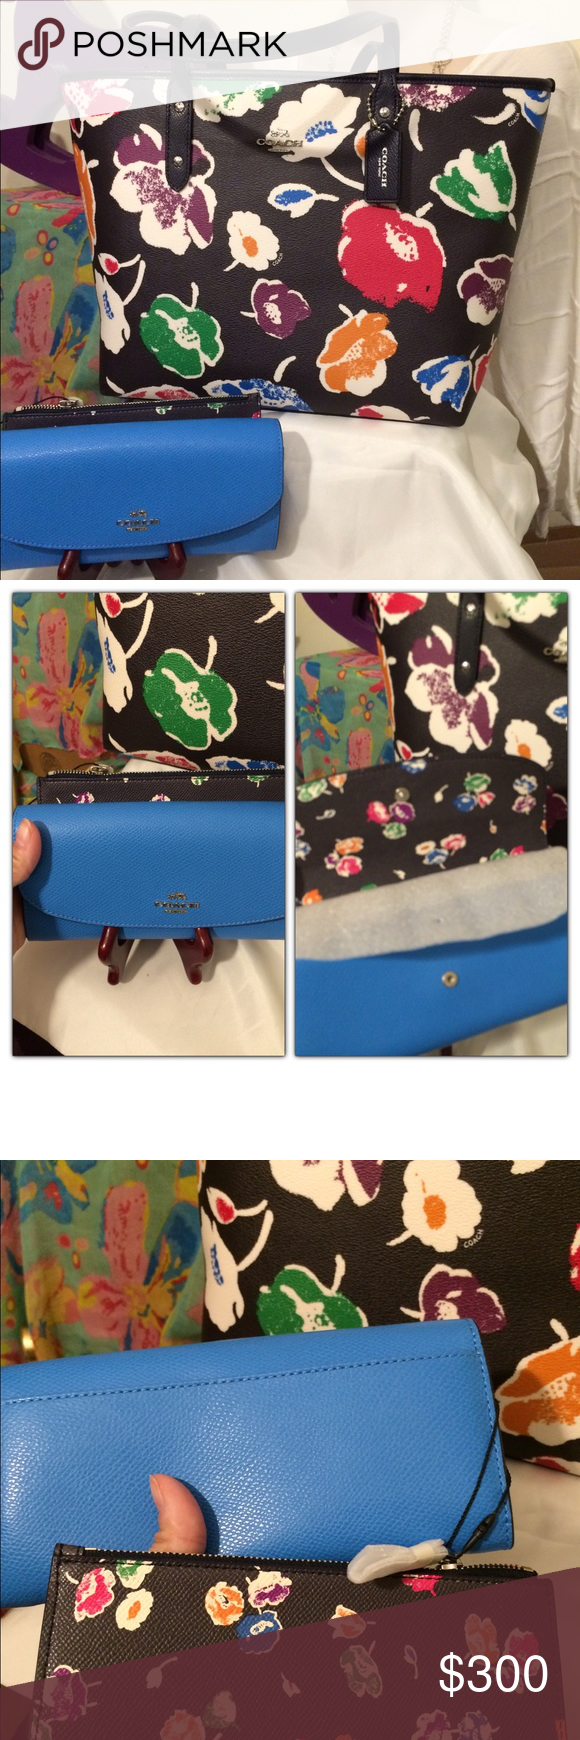 NWT Coach Street wildflower tote set NWT Coach Street Wildflower large tote set. Black and multi. Comes with full size Coach wallet with pop up pouch with coordinating color with wildflower print on the inside and on the pop out pouch. Coach Bags Totes